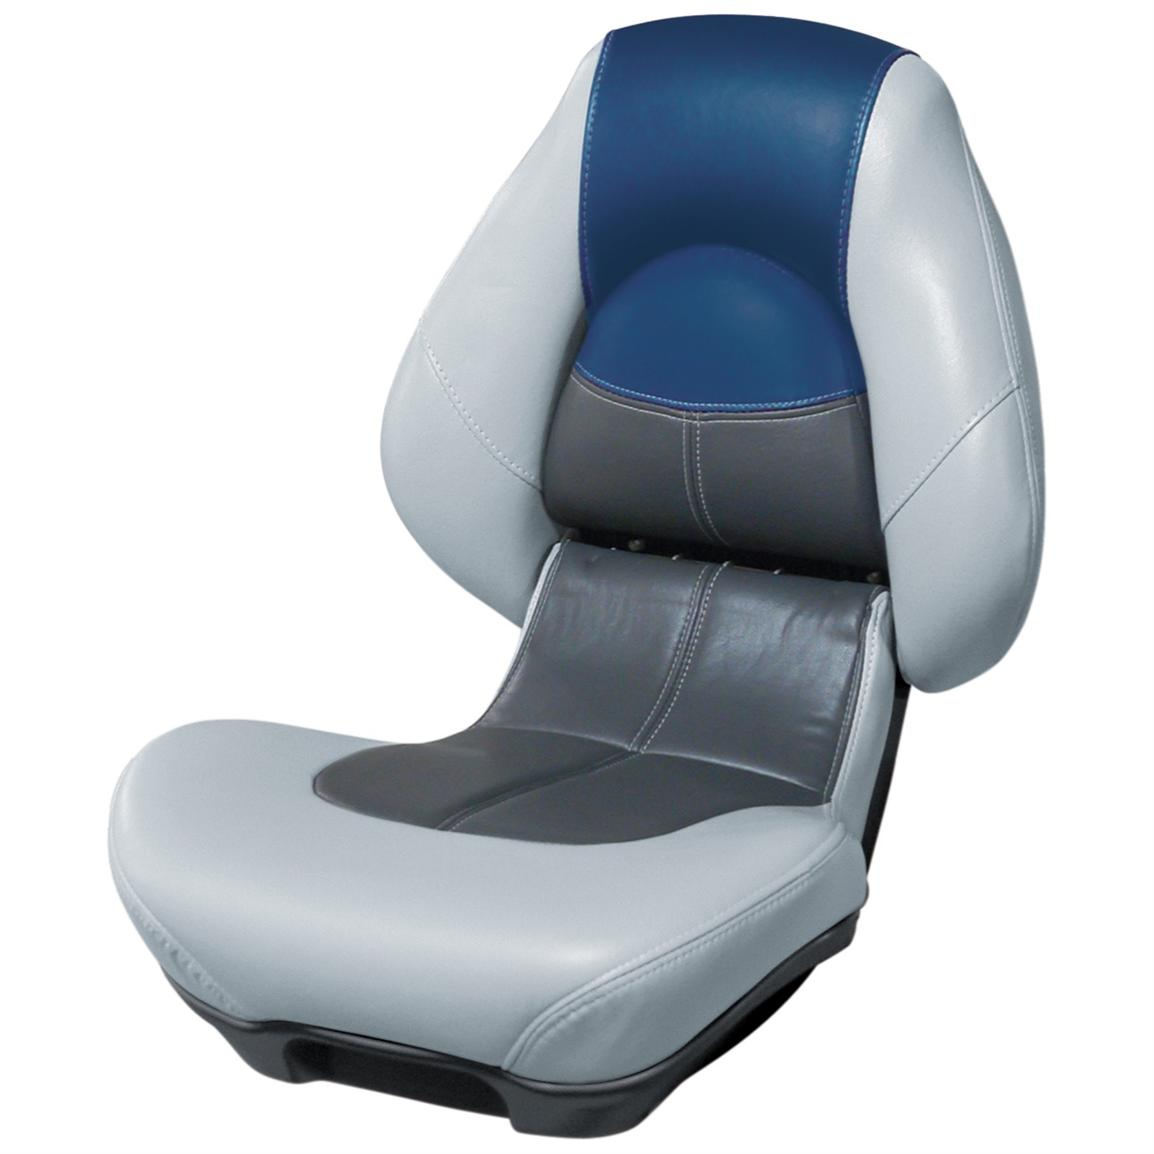 Wise® Blast-Off™ Series Centric 2 Folding Boat Seat, Grey / Charcoal / Blue